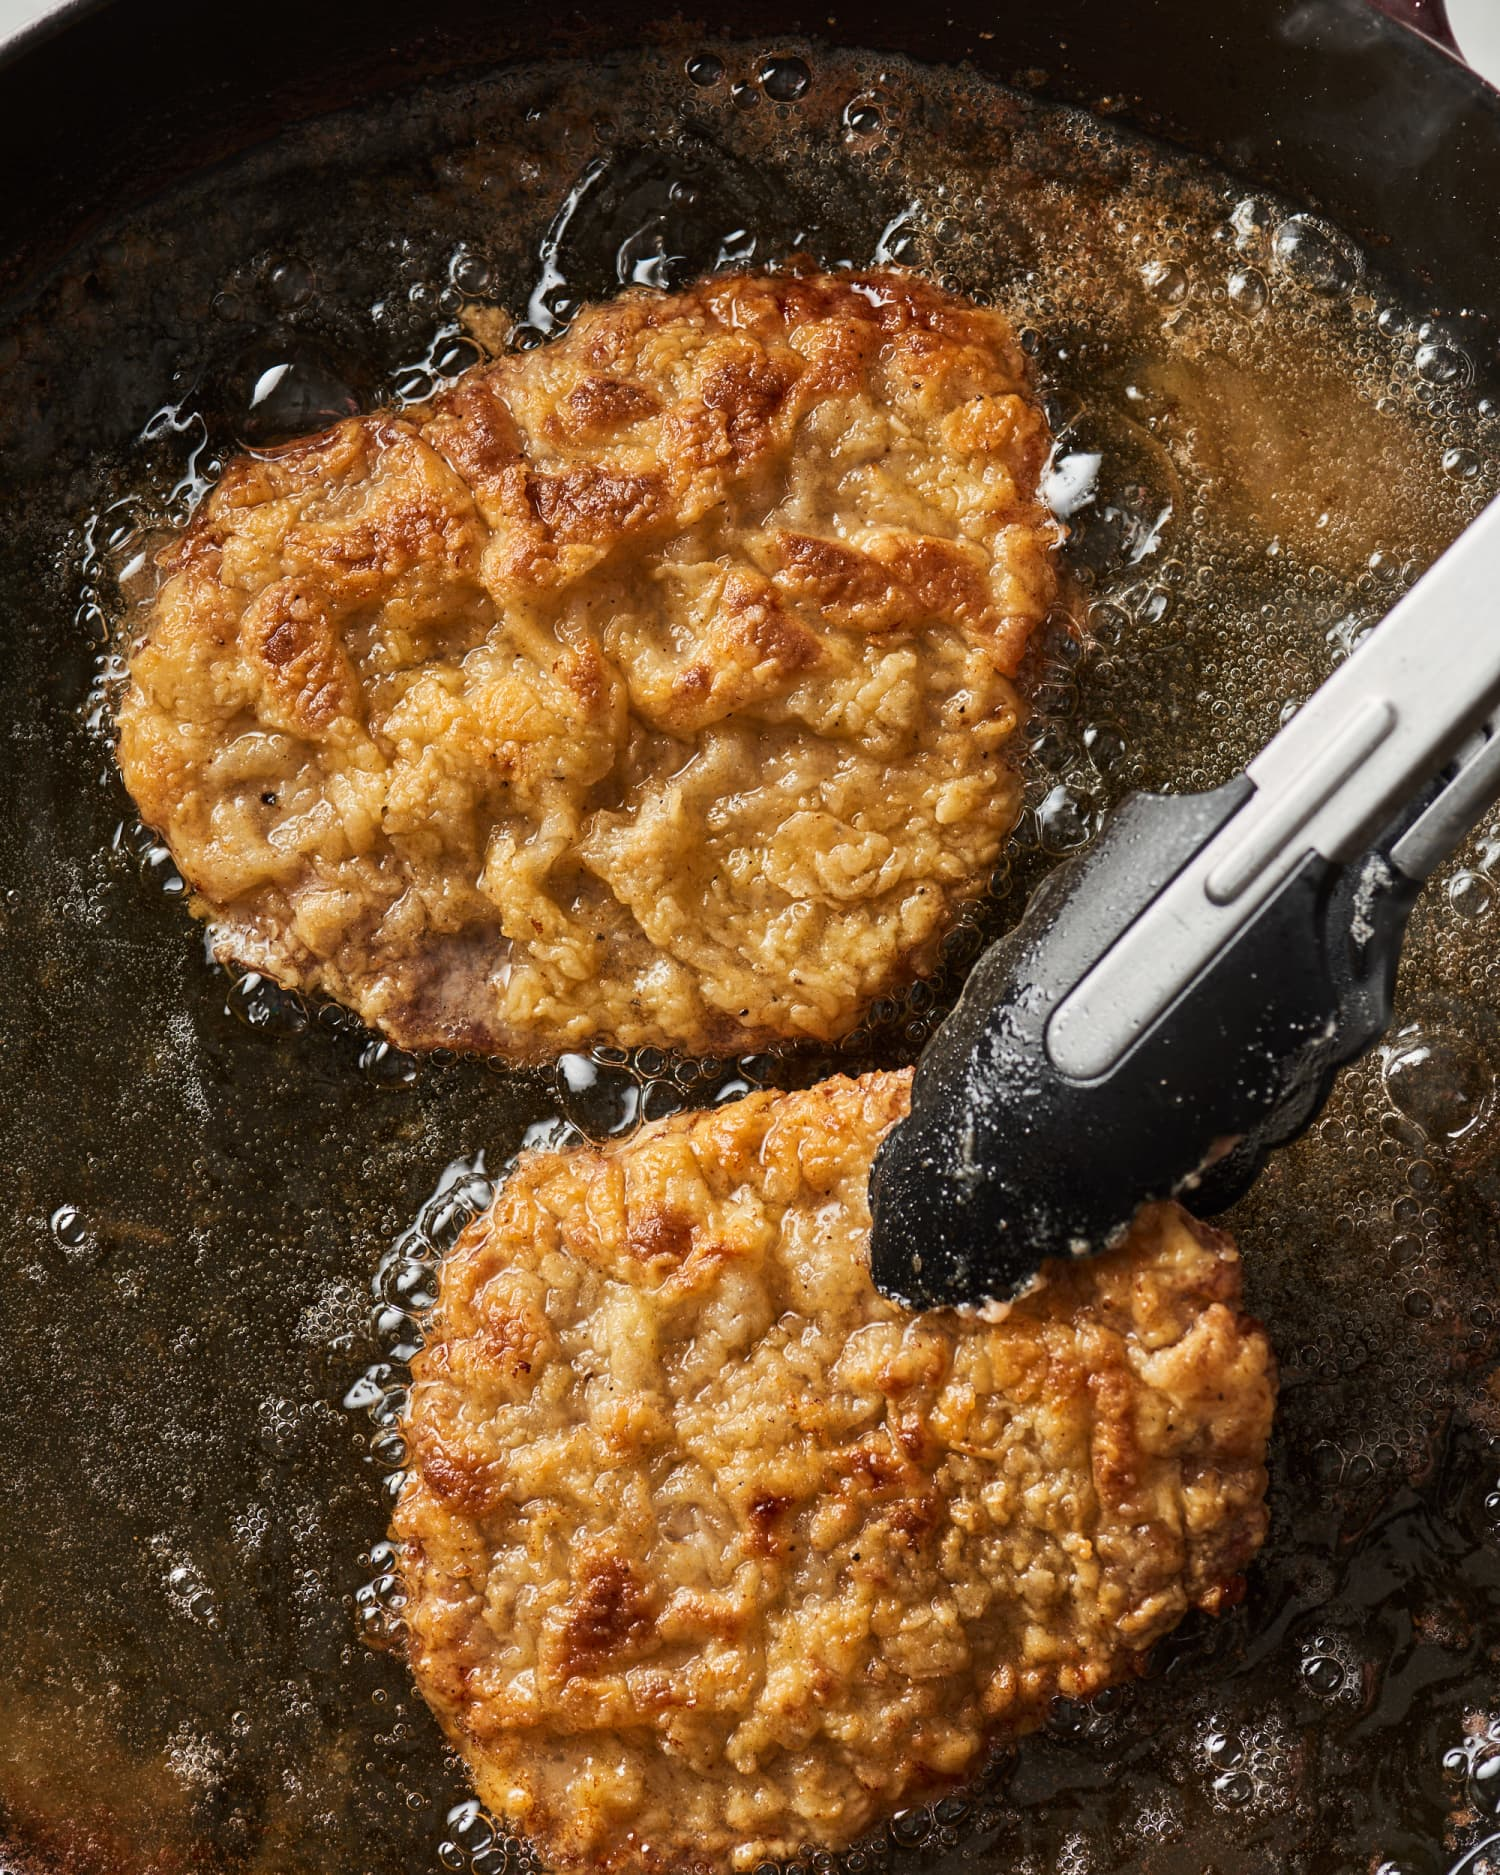 The Easiest Way to Make Chicken Fried Steak with Gravy at Home